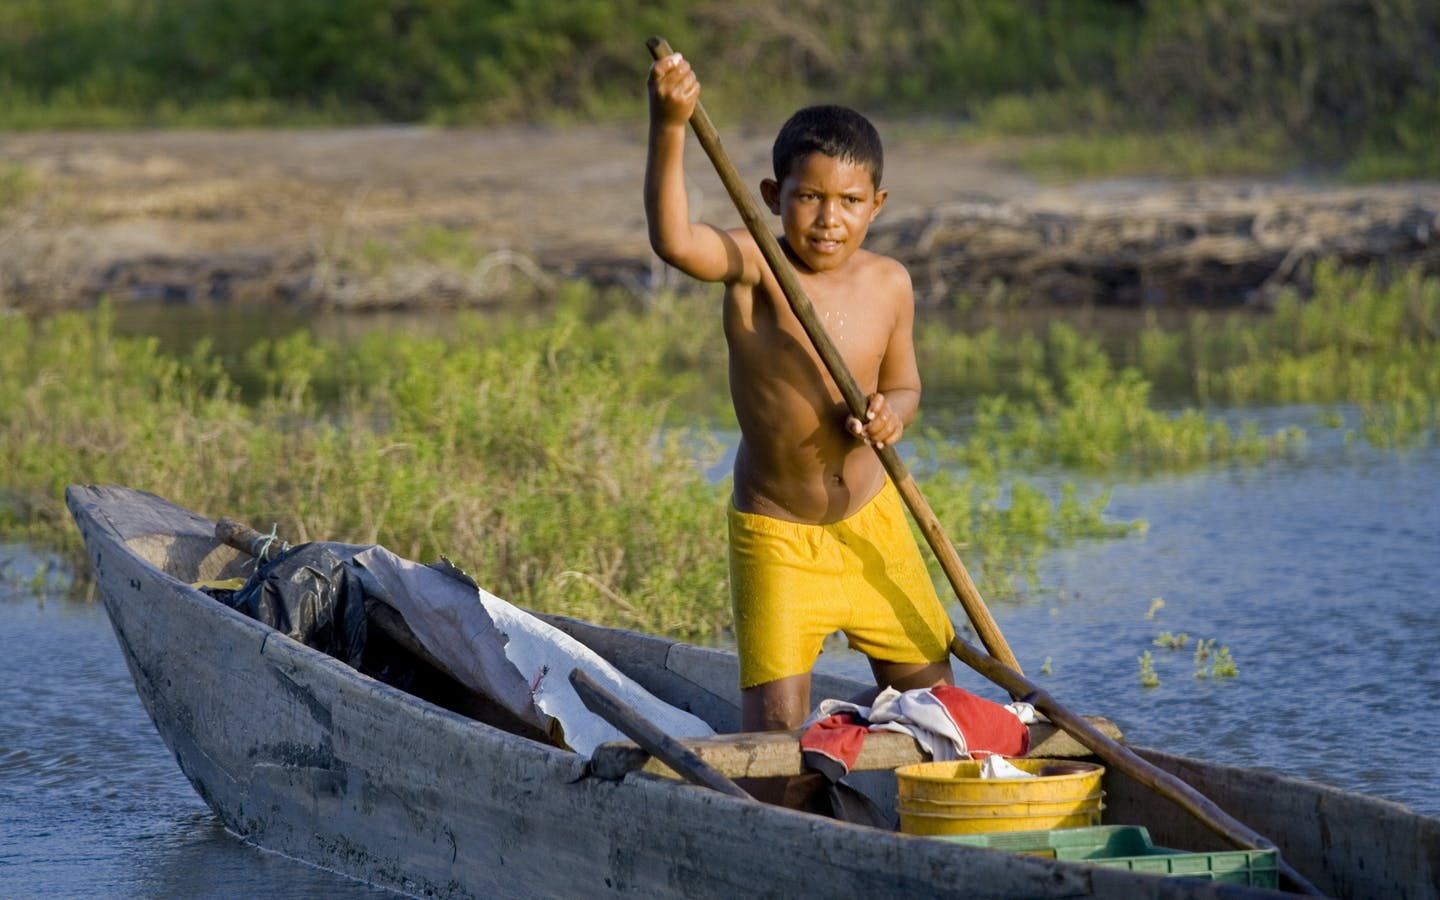 A local boy in a canoe near Santa Marta, Colombia